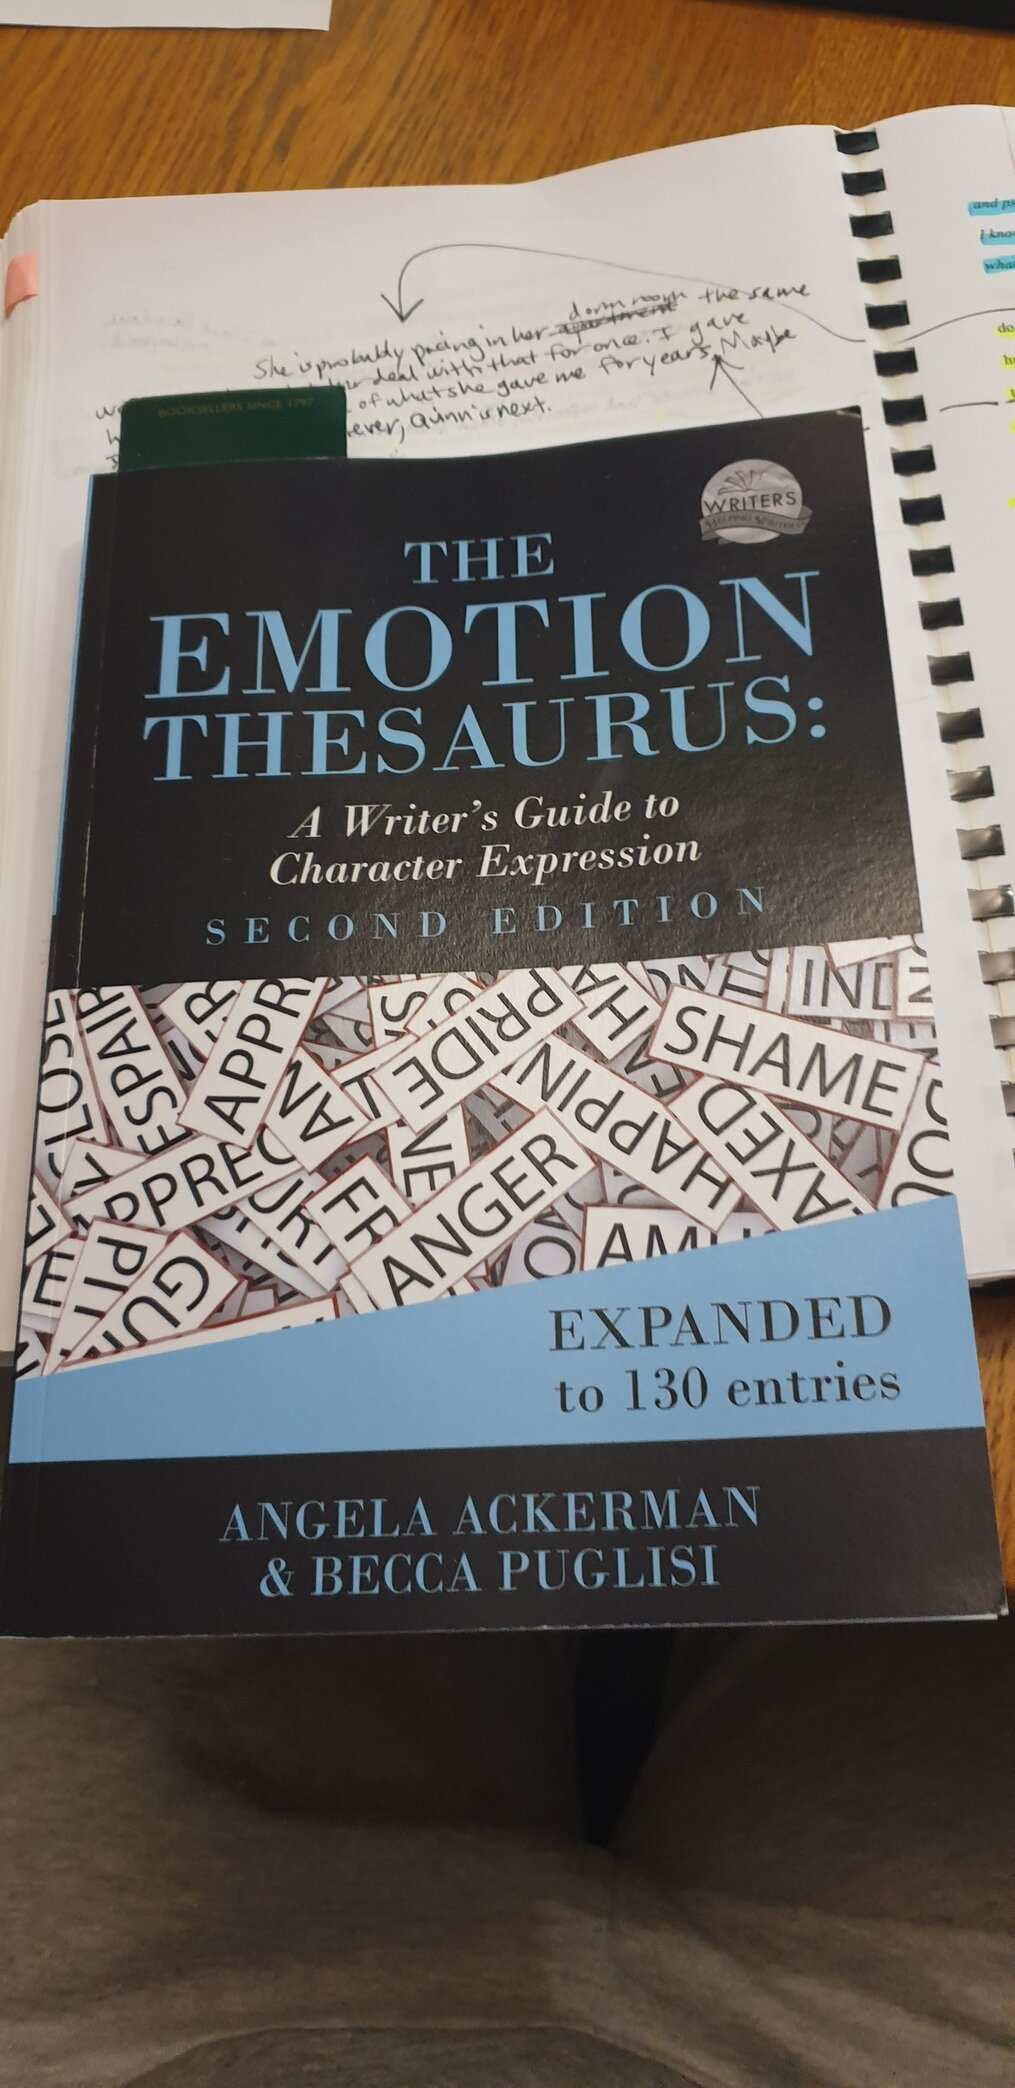 Emotional-Thesaurus-line-editing-my-step-by-step-process-susan-shiney-writing-craft-books